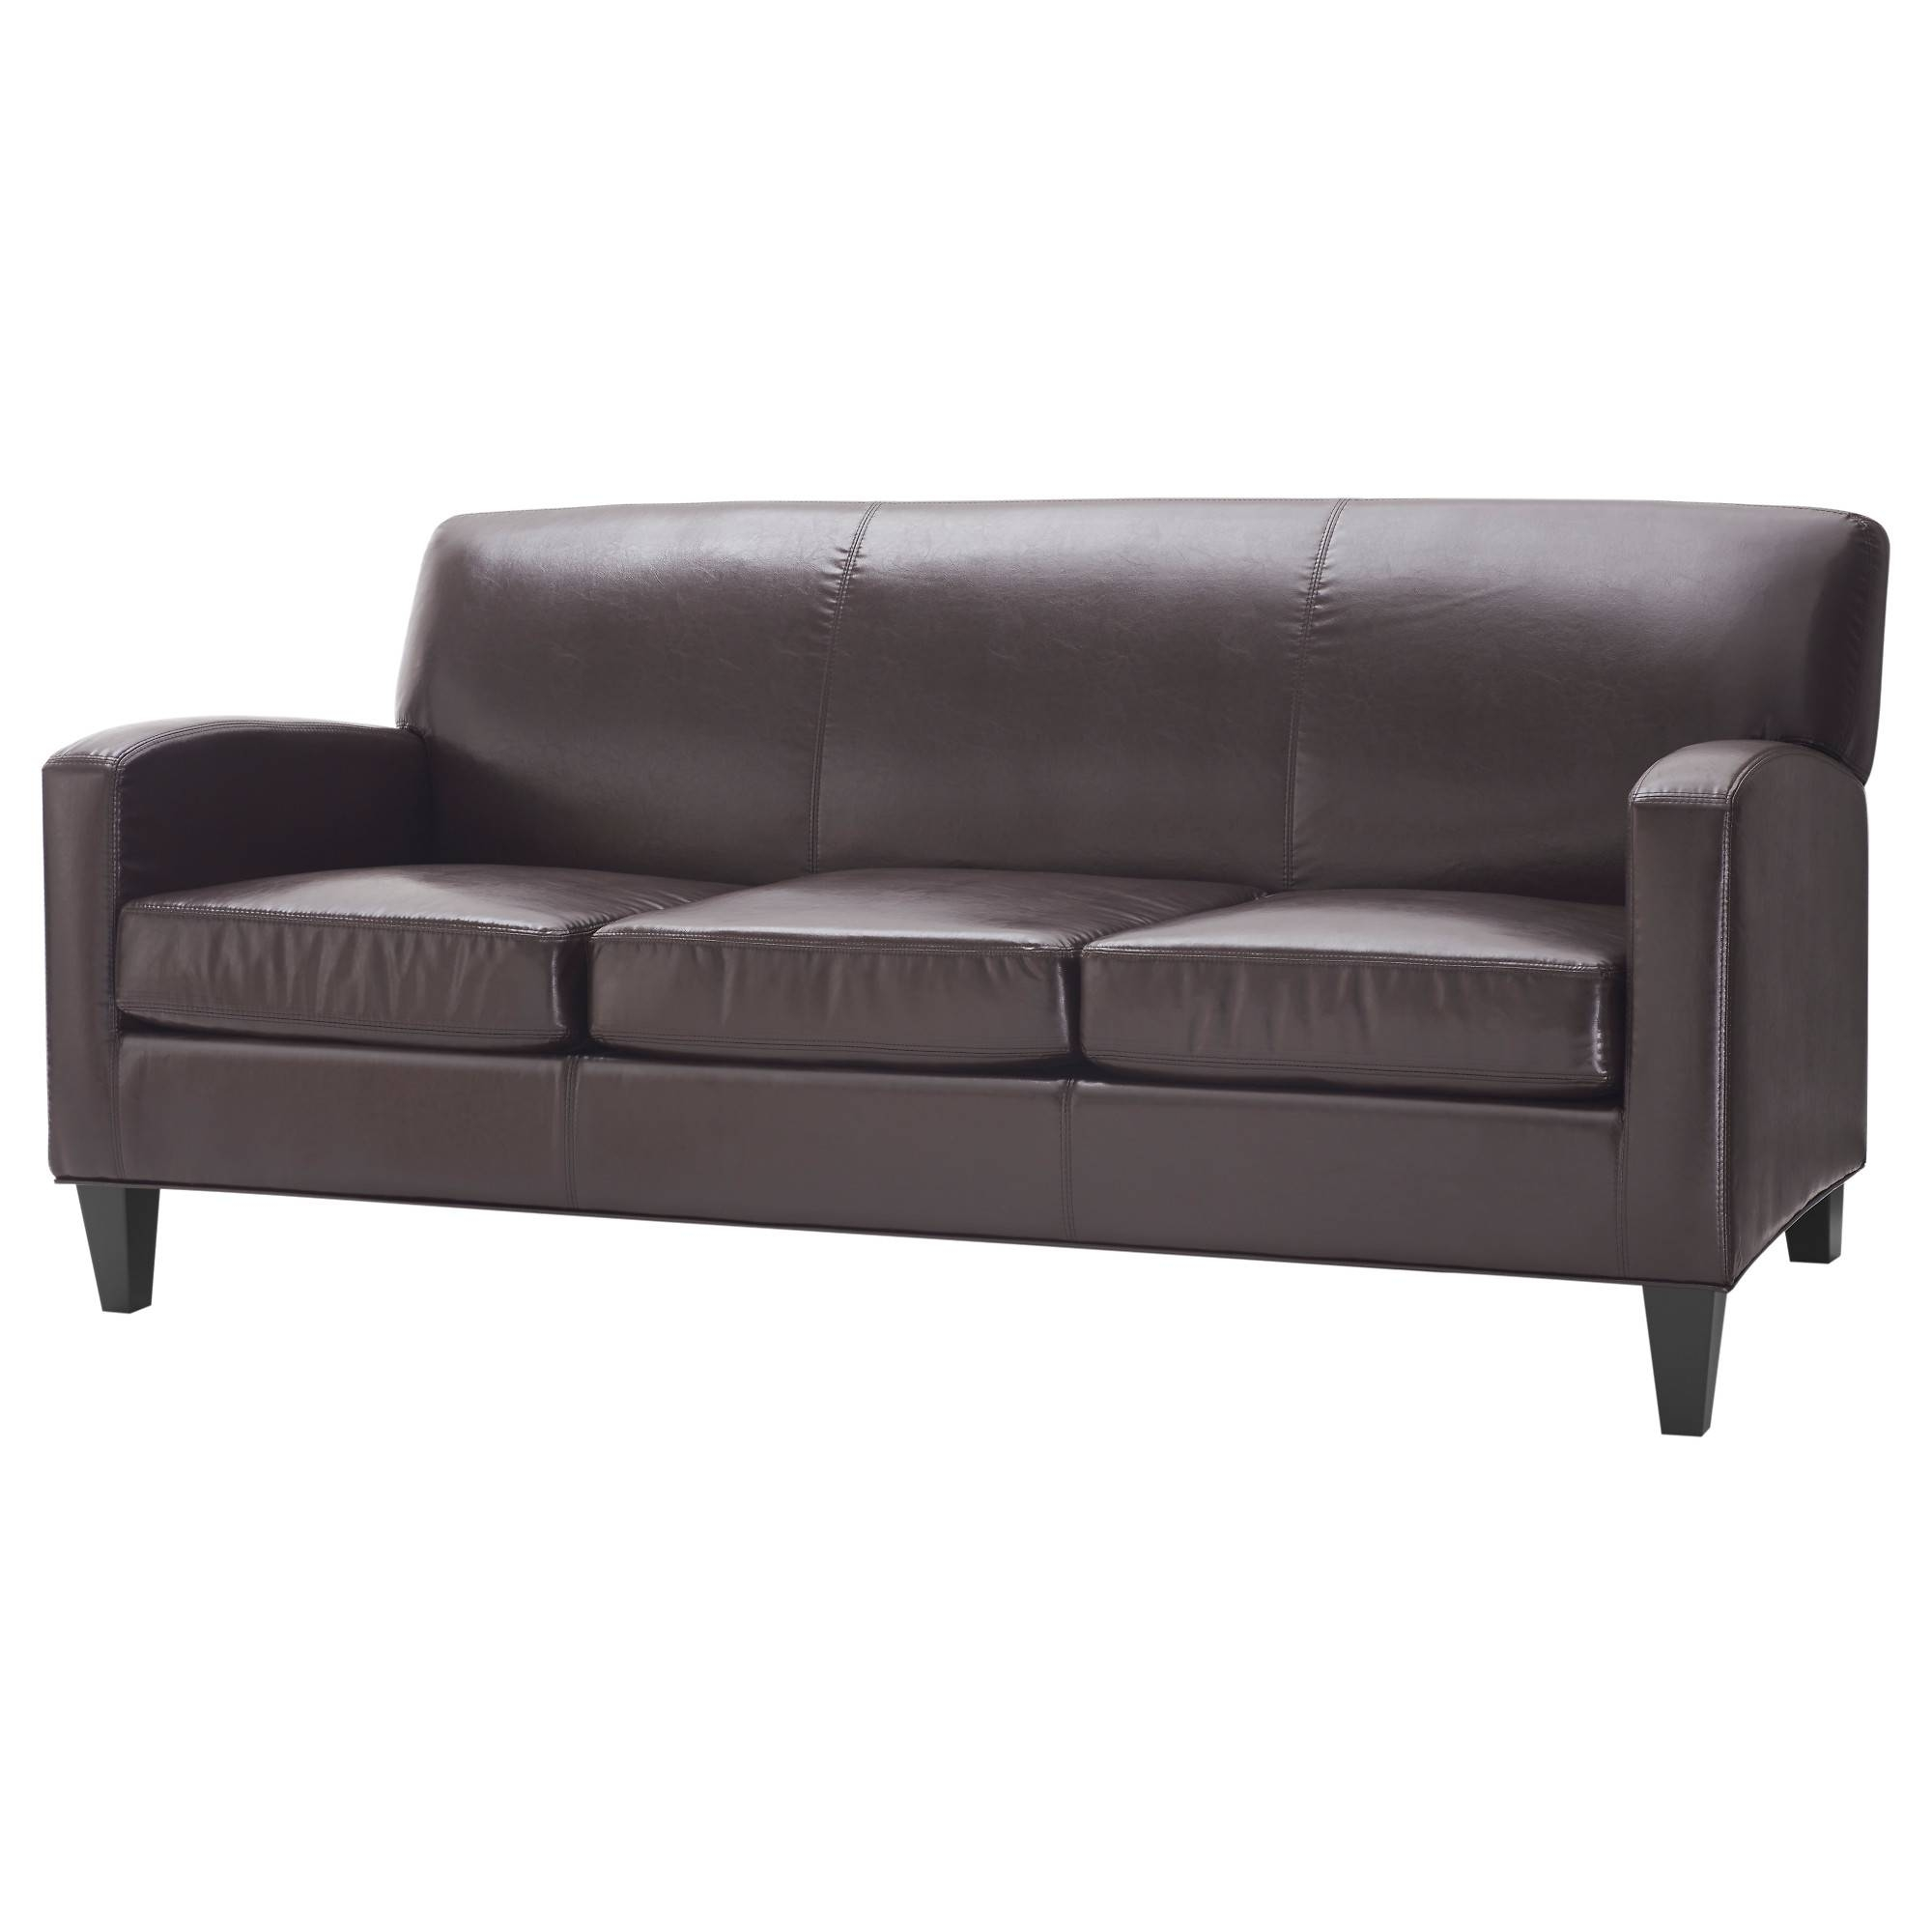 Sofas Center : Modern Contemporary Sofa Sets Sectional Sofas in Contemporary Black Leather Sofas (Image 26 of 30)